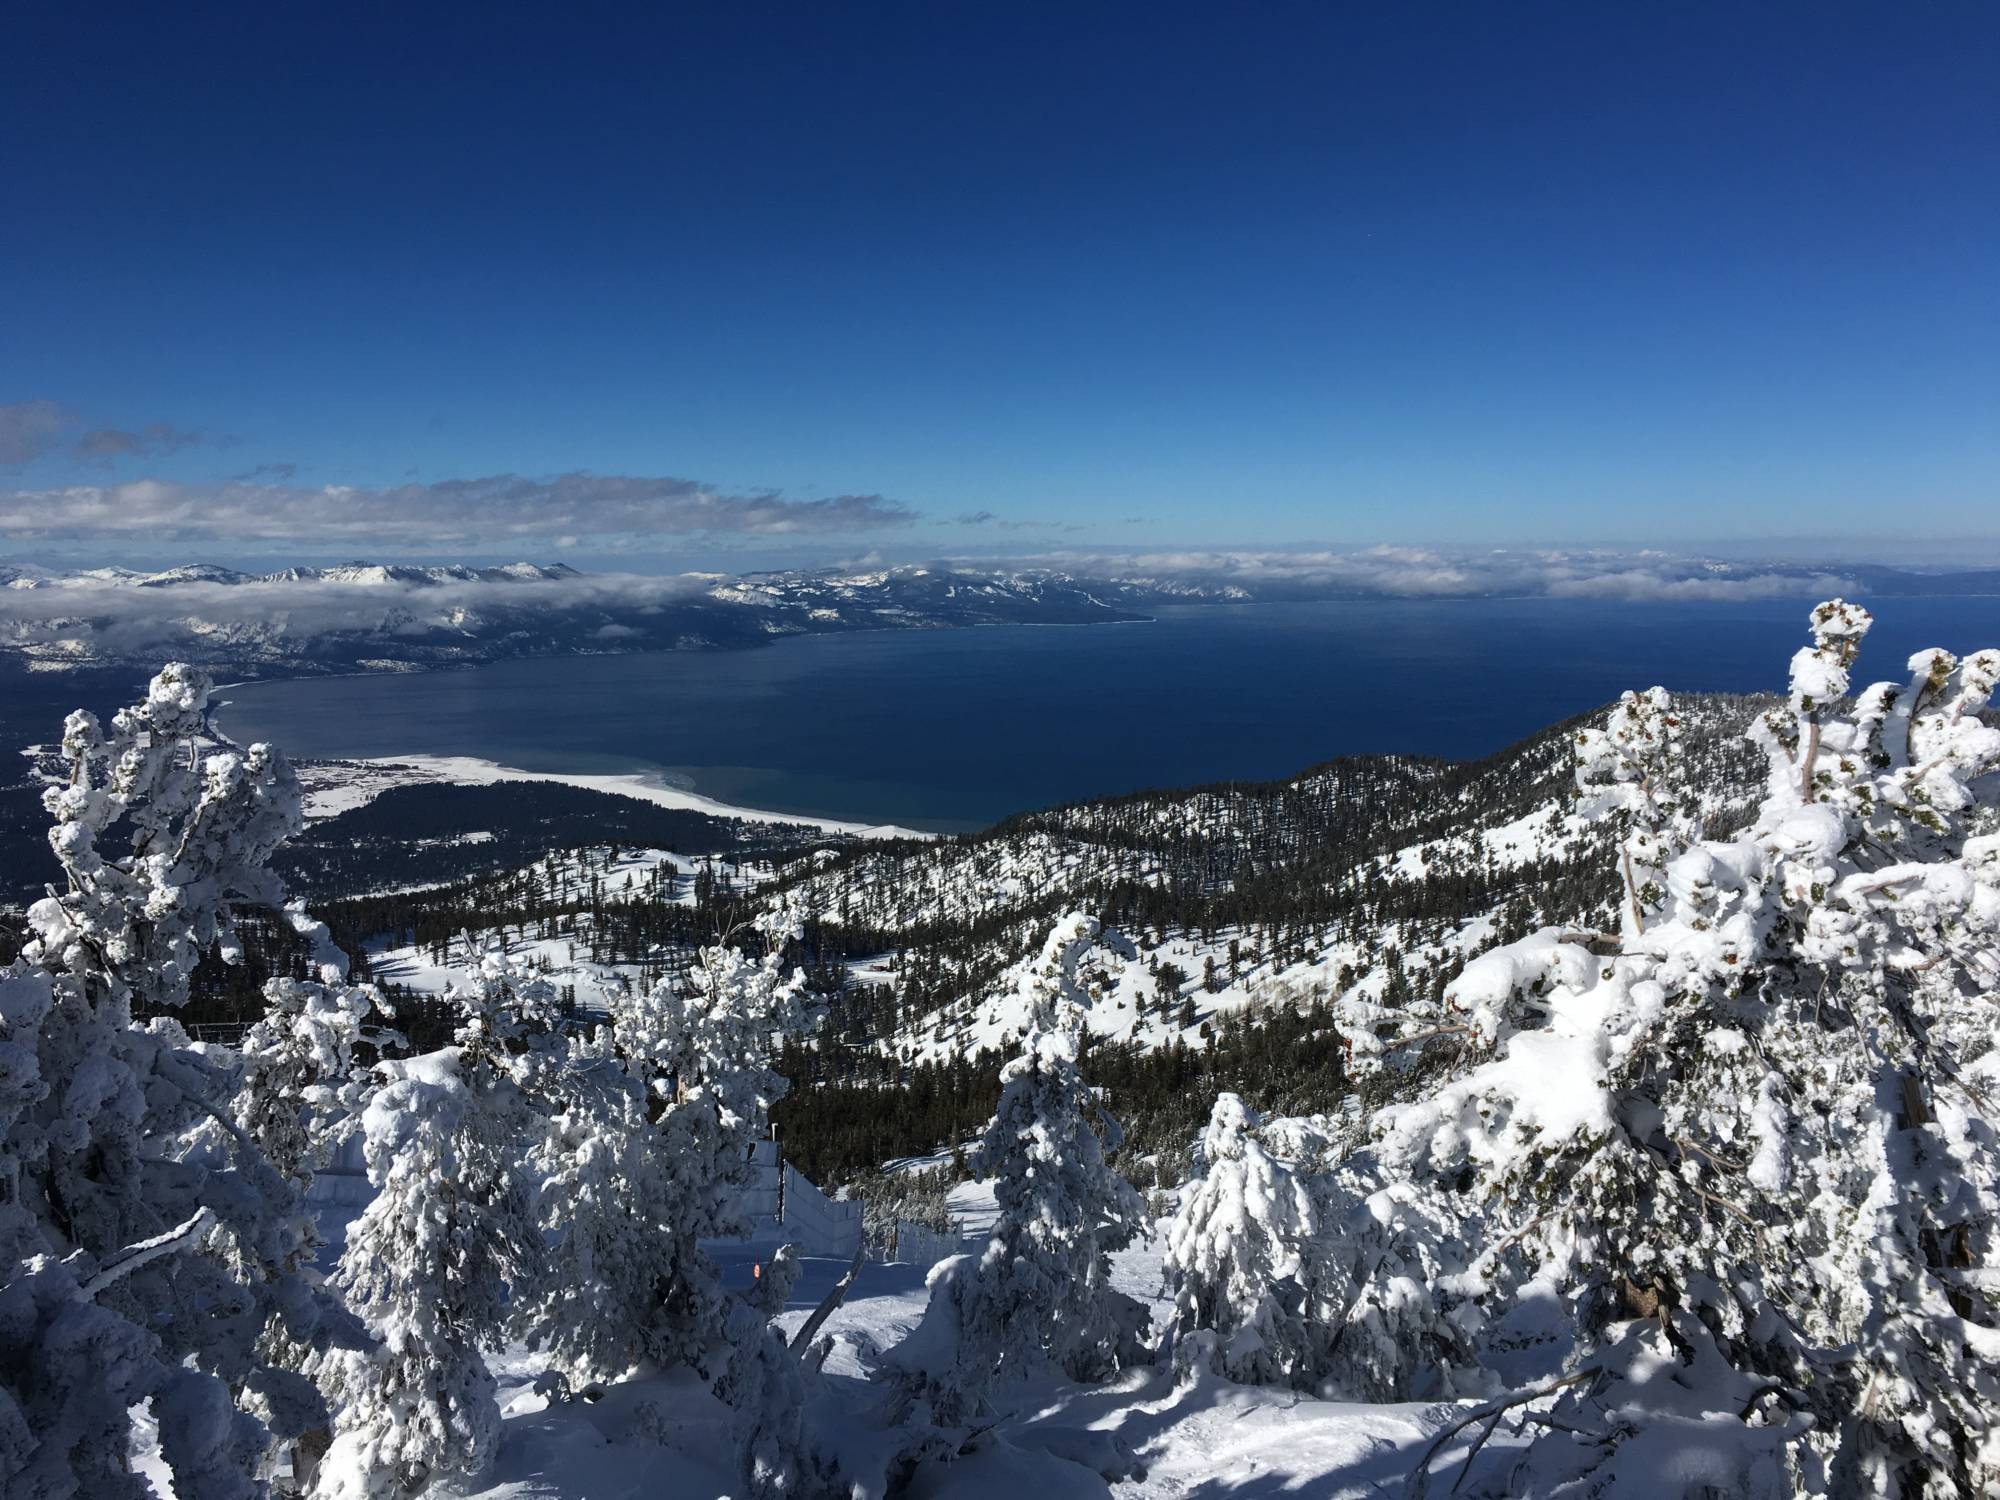 As scientists have long predicted, more winter precipitation at Lake Tahoe is falling as rain, rather than snow.